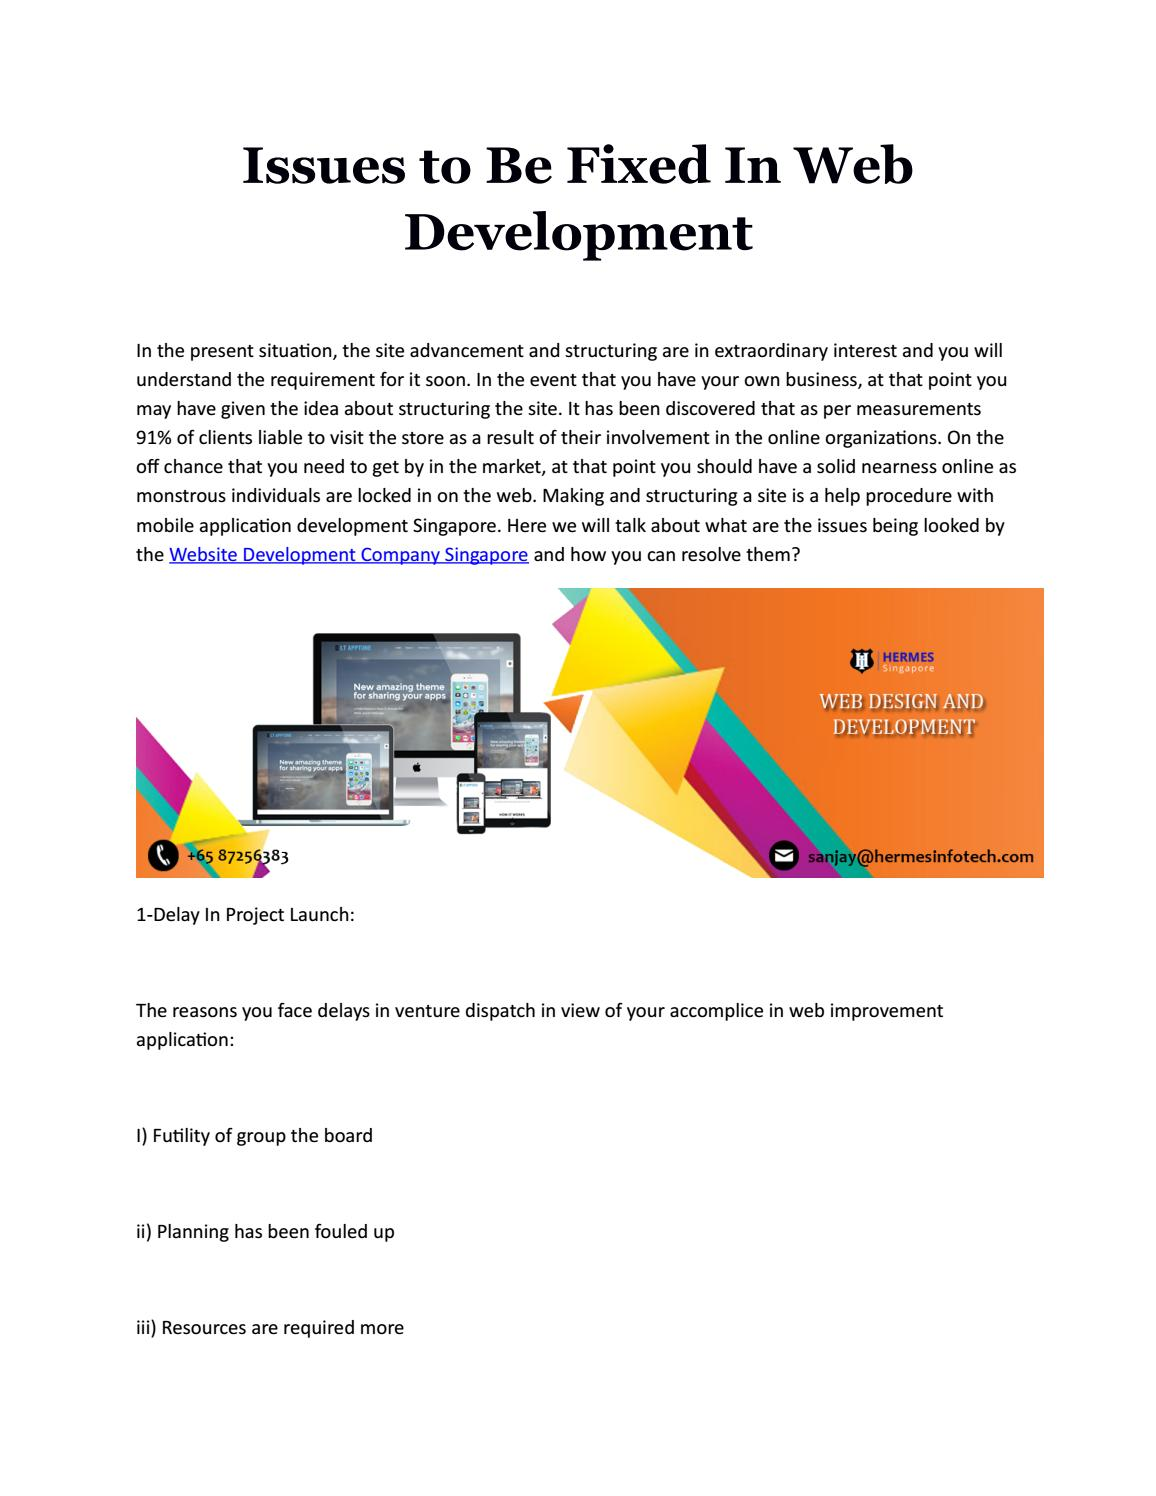 Issues To Be Fixed In Web Development By Hermes Infotech Issuu